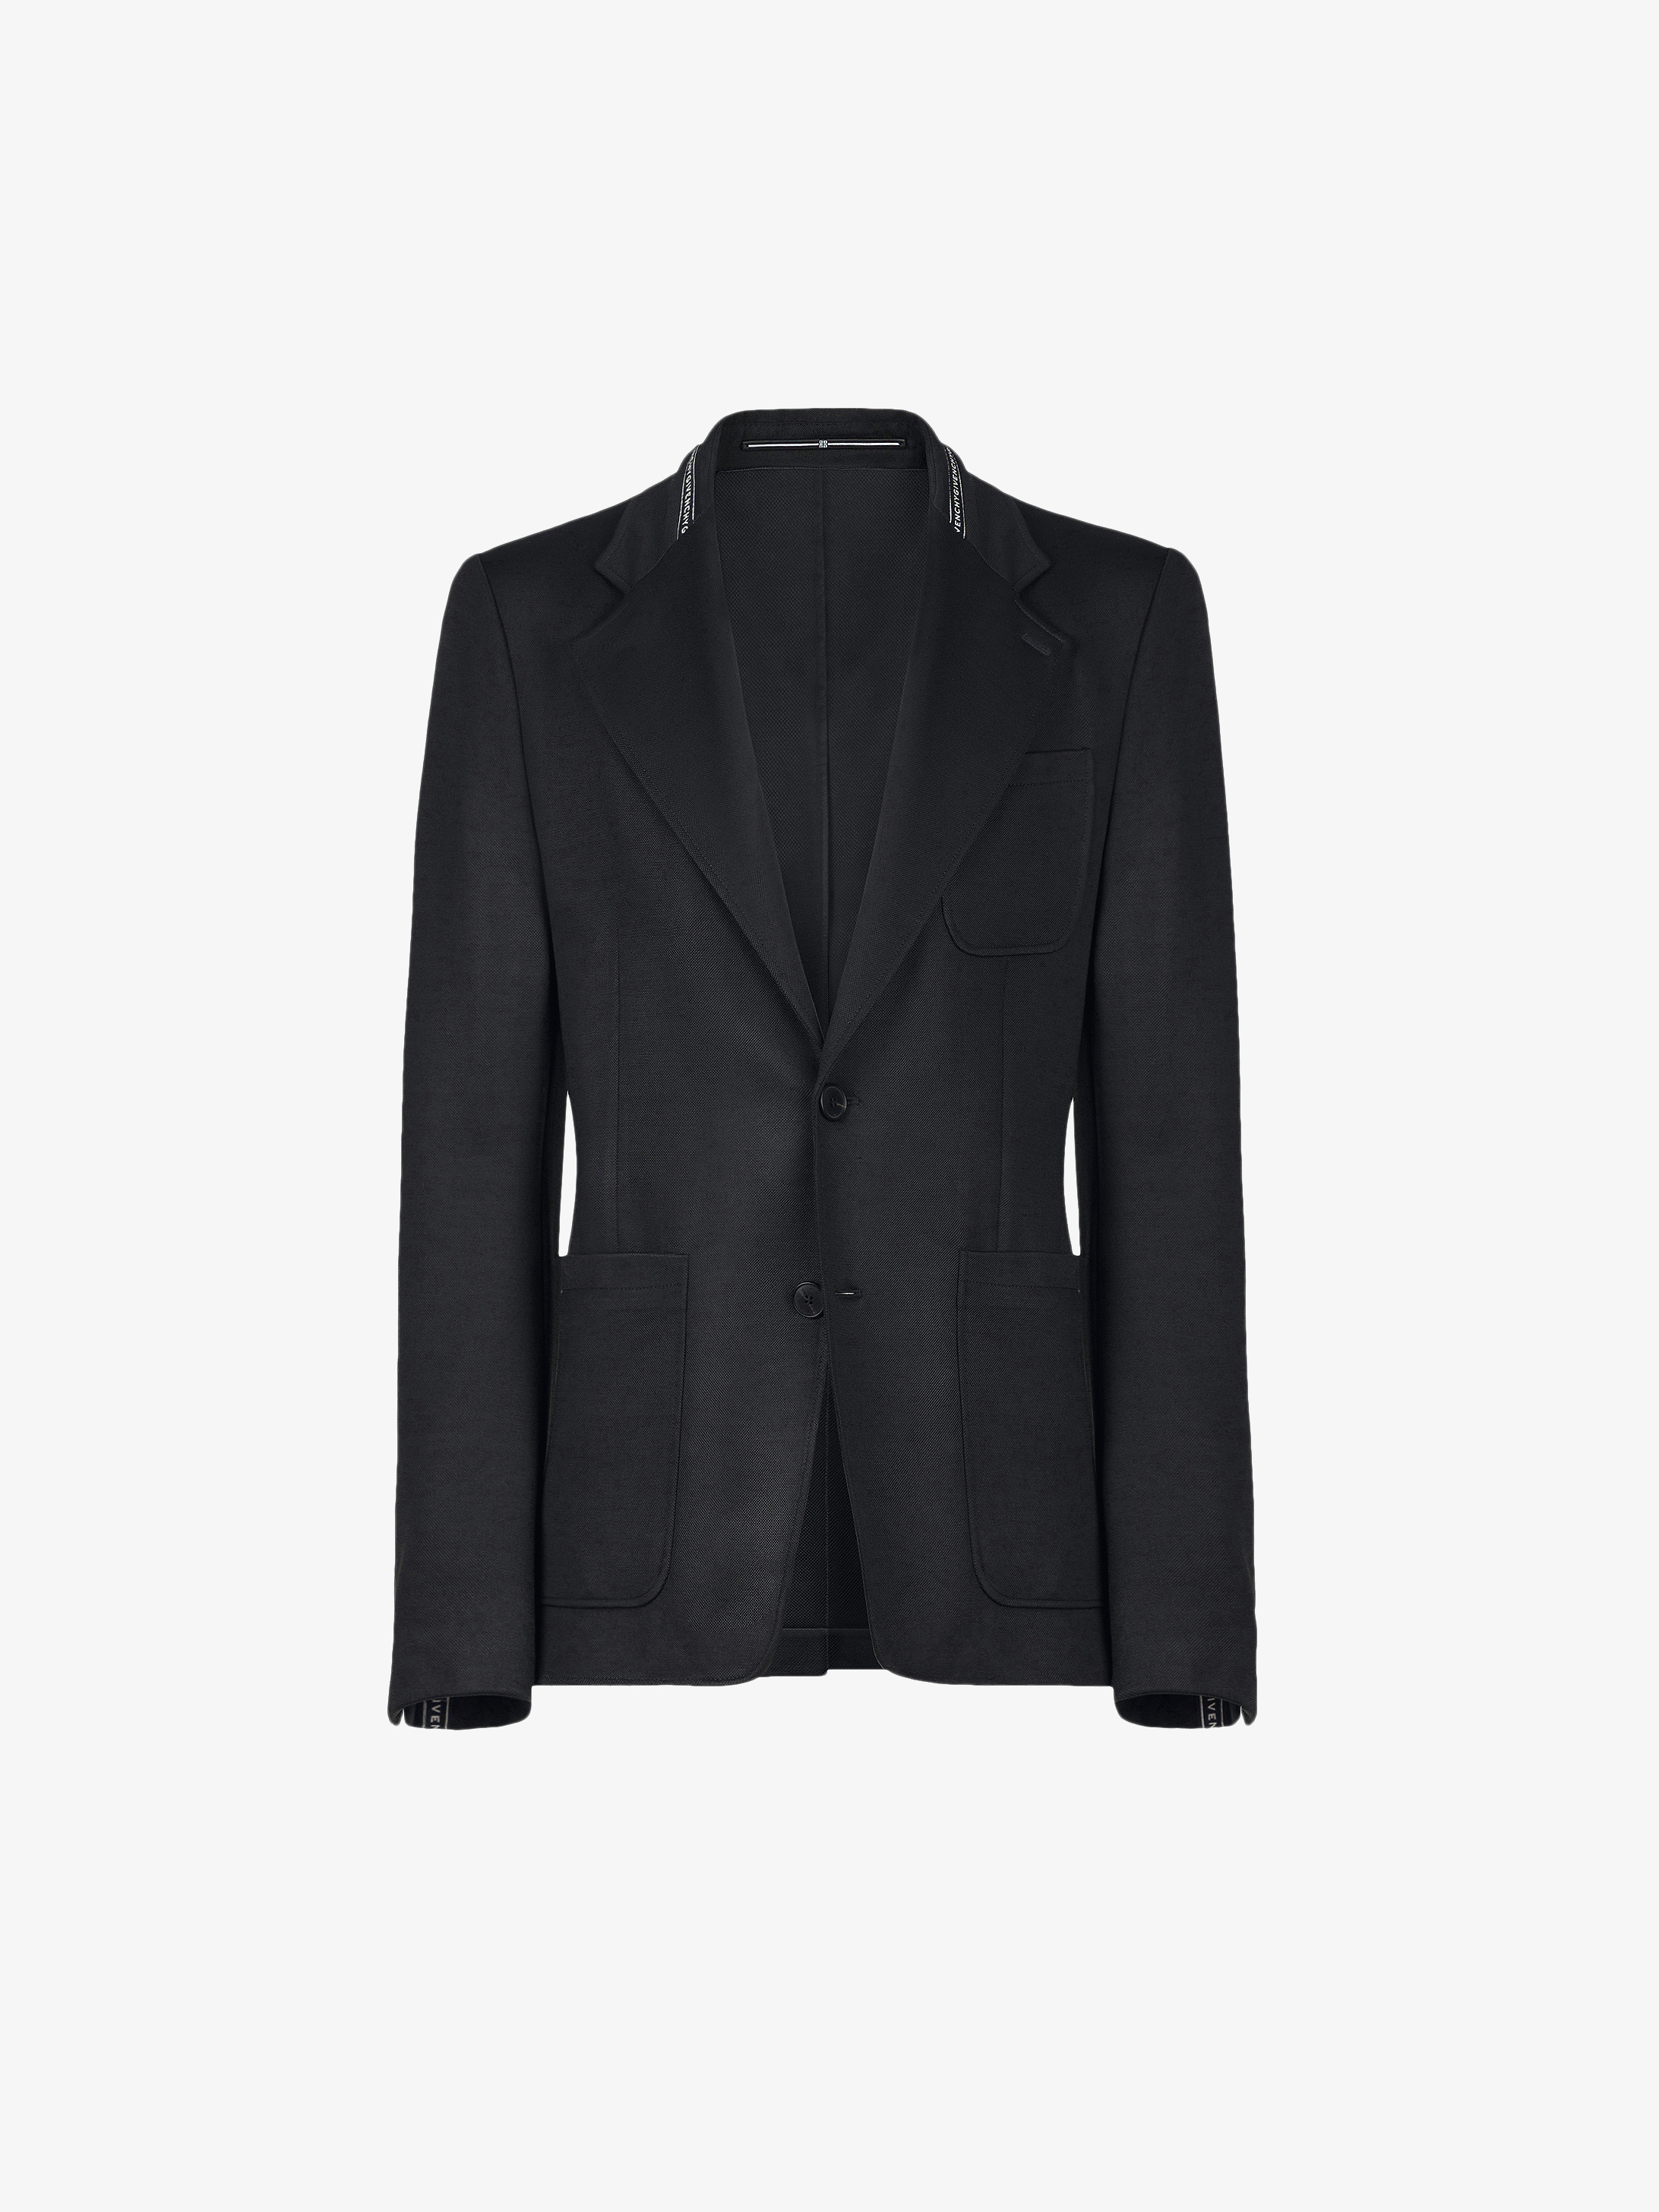 GIVENCHY webbing jacket